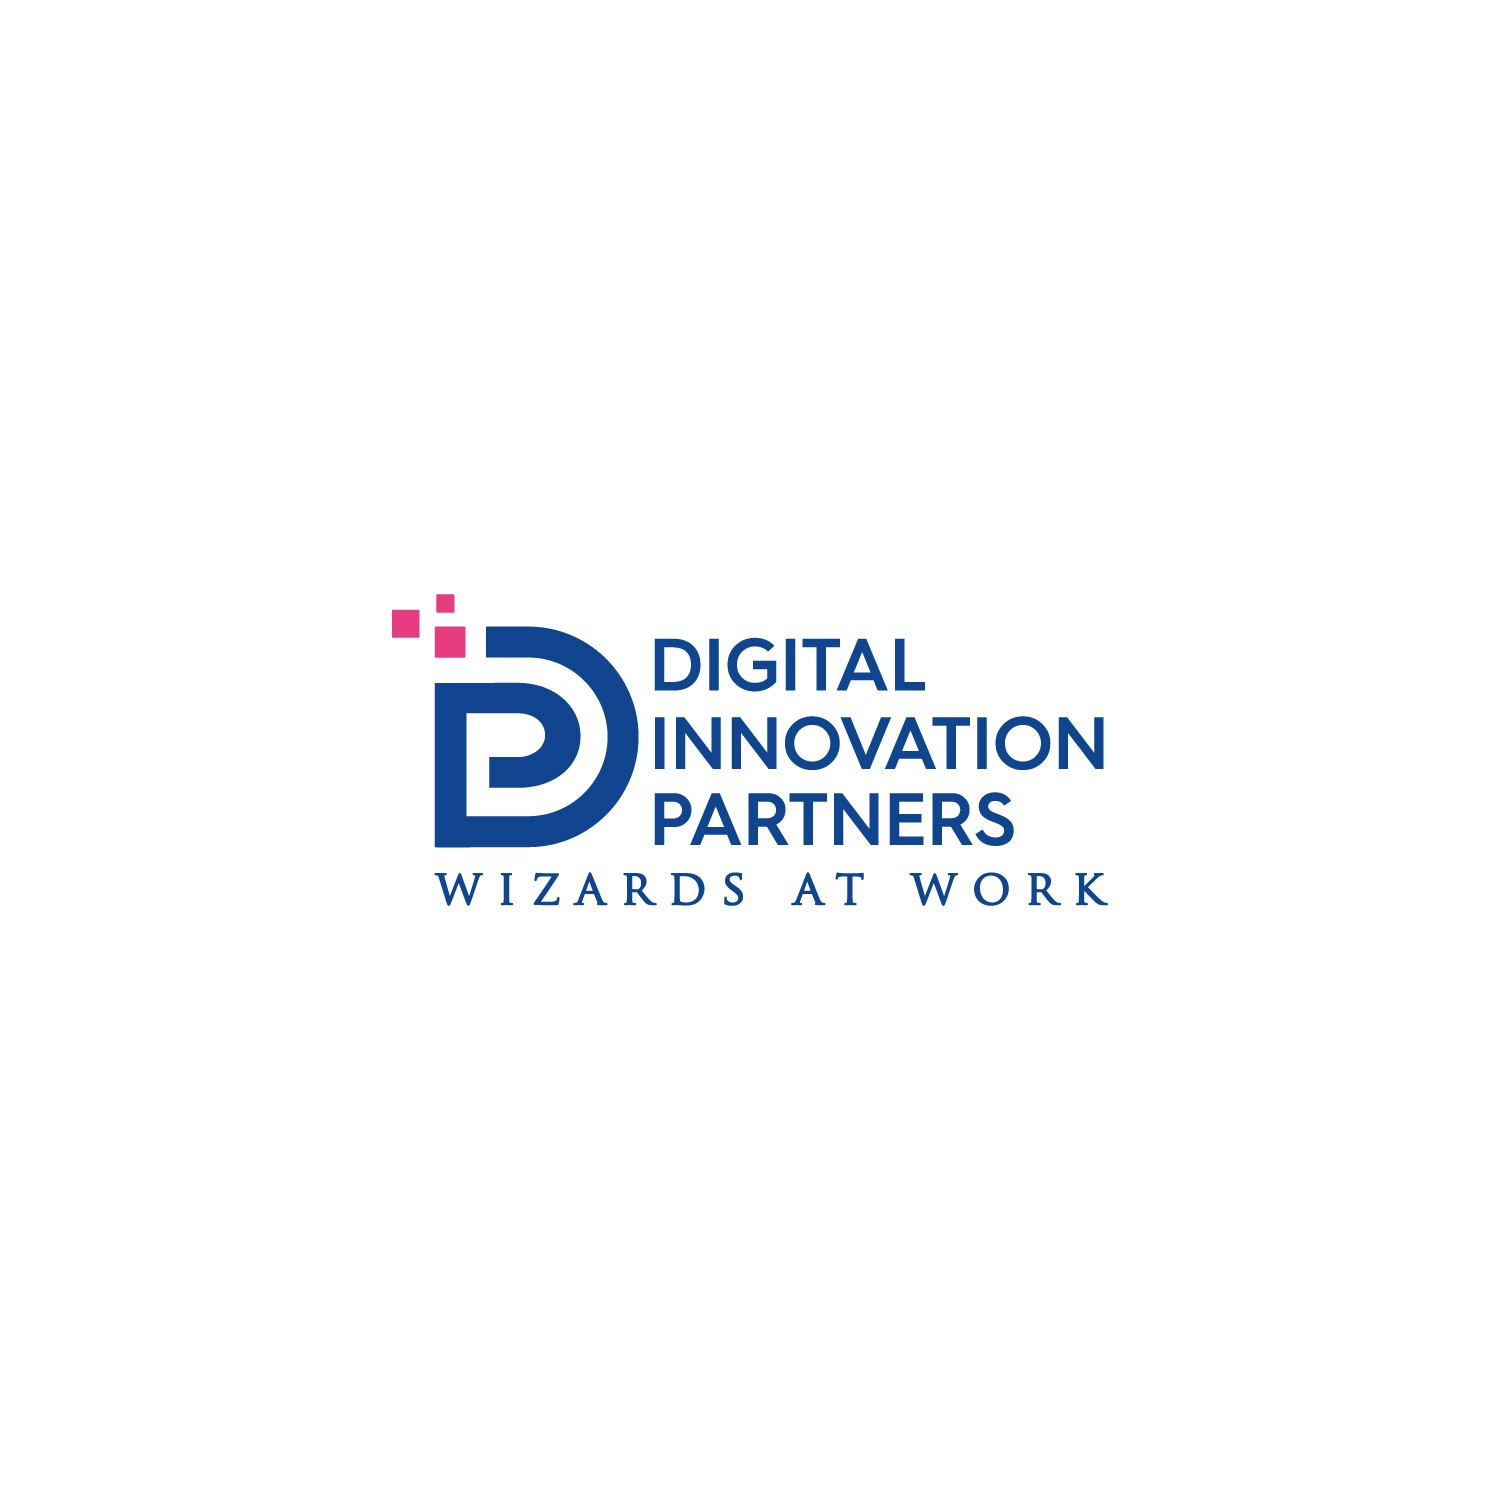 A Brand for Software Wizards.